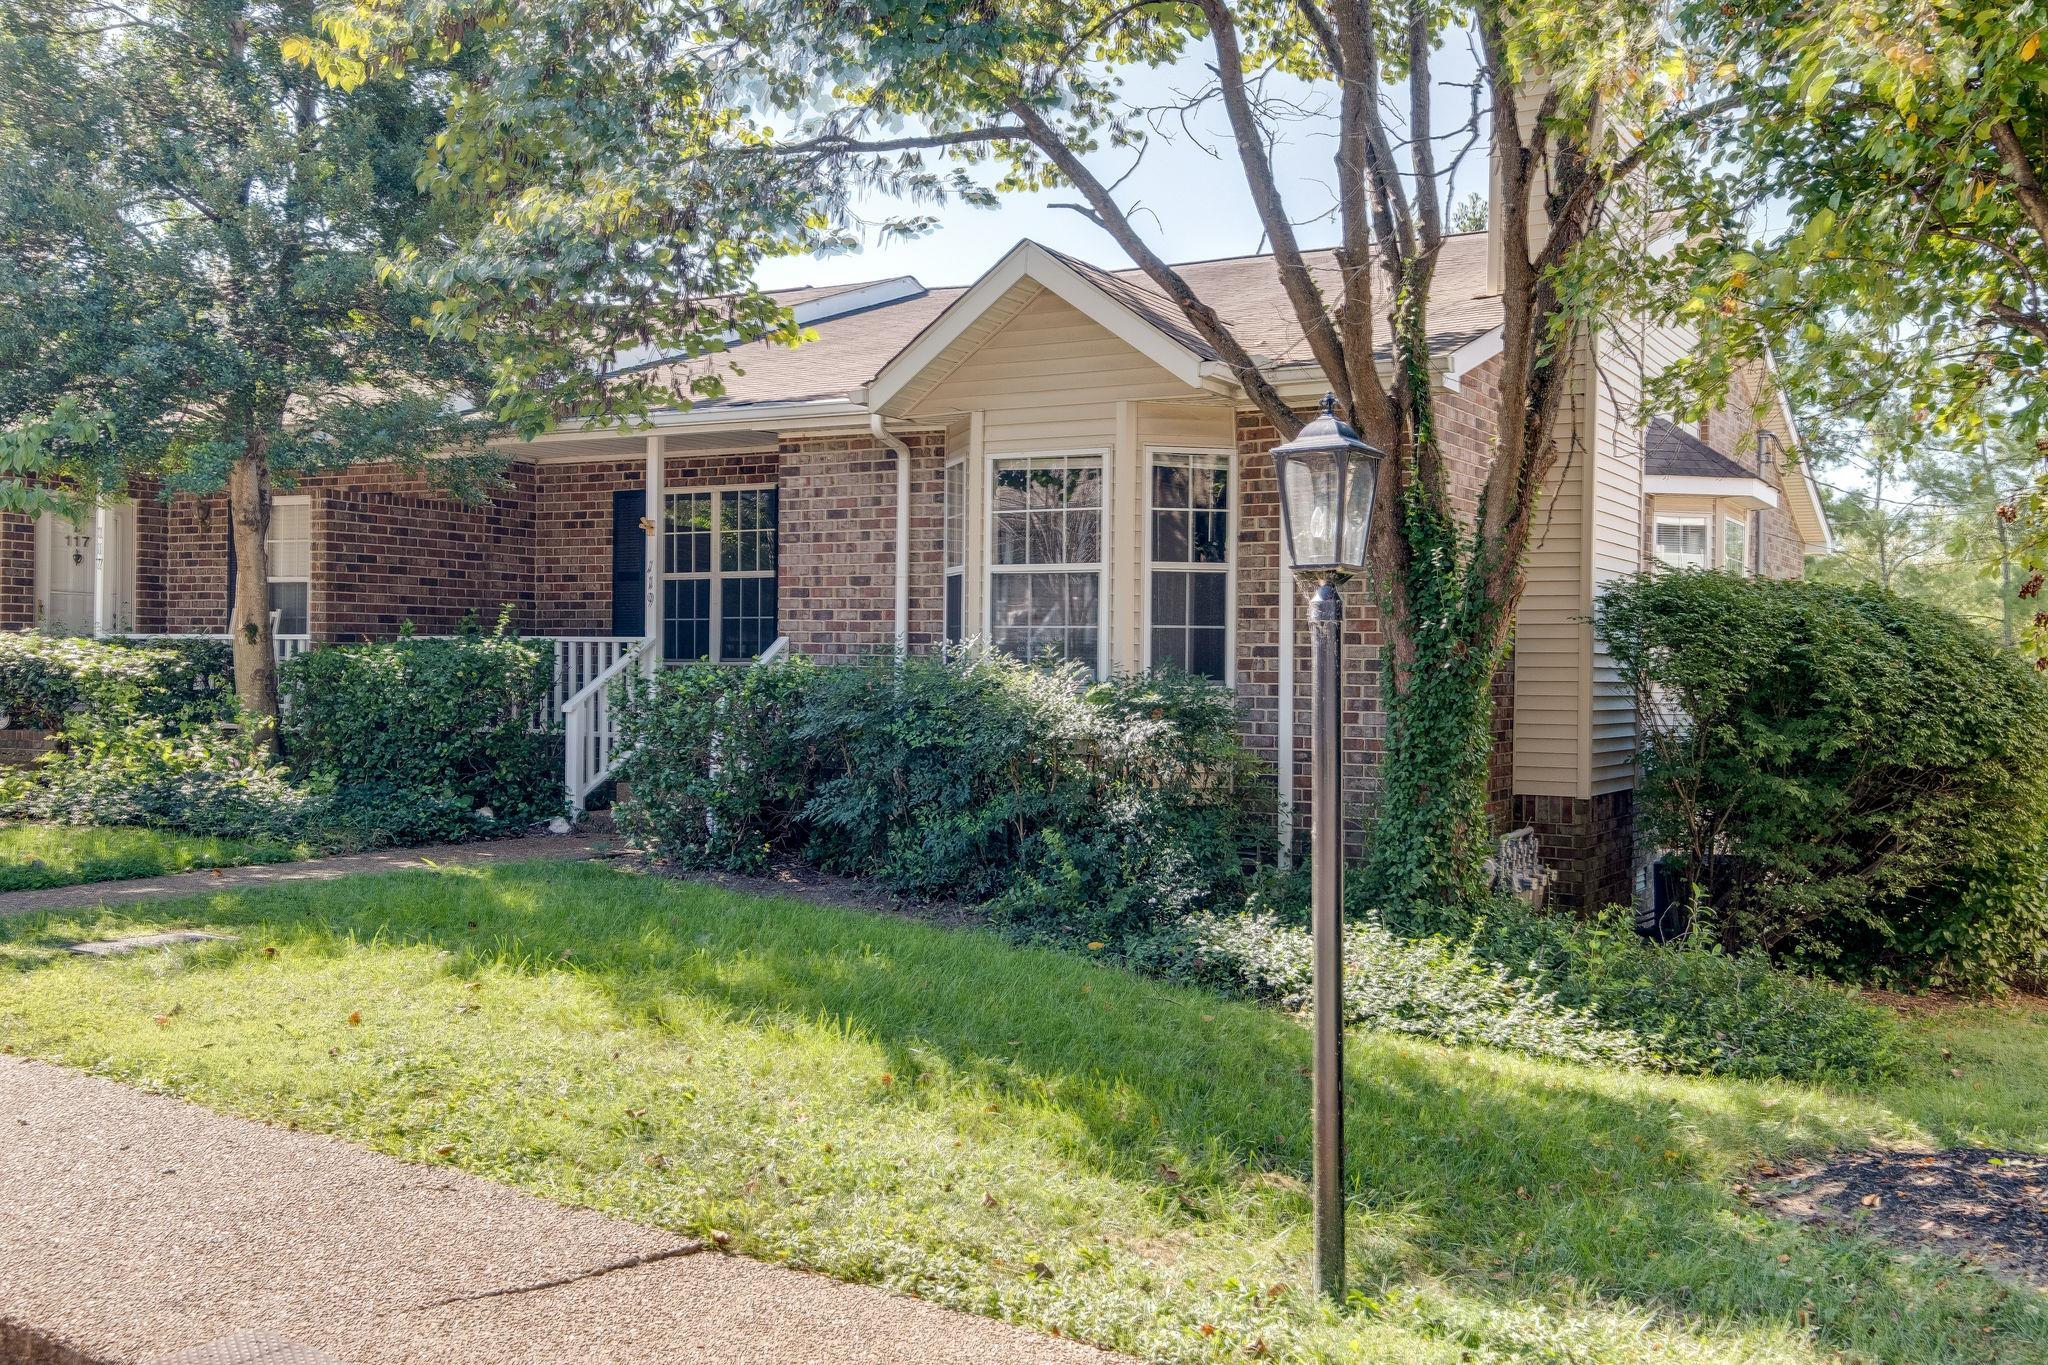 119 Pepper Ridge Cir, Nashville-Antioch in Davidson County County, TN 37013 Home for Sale